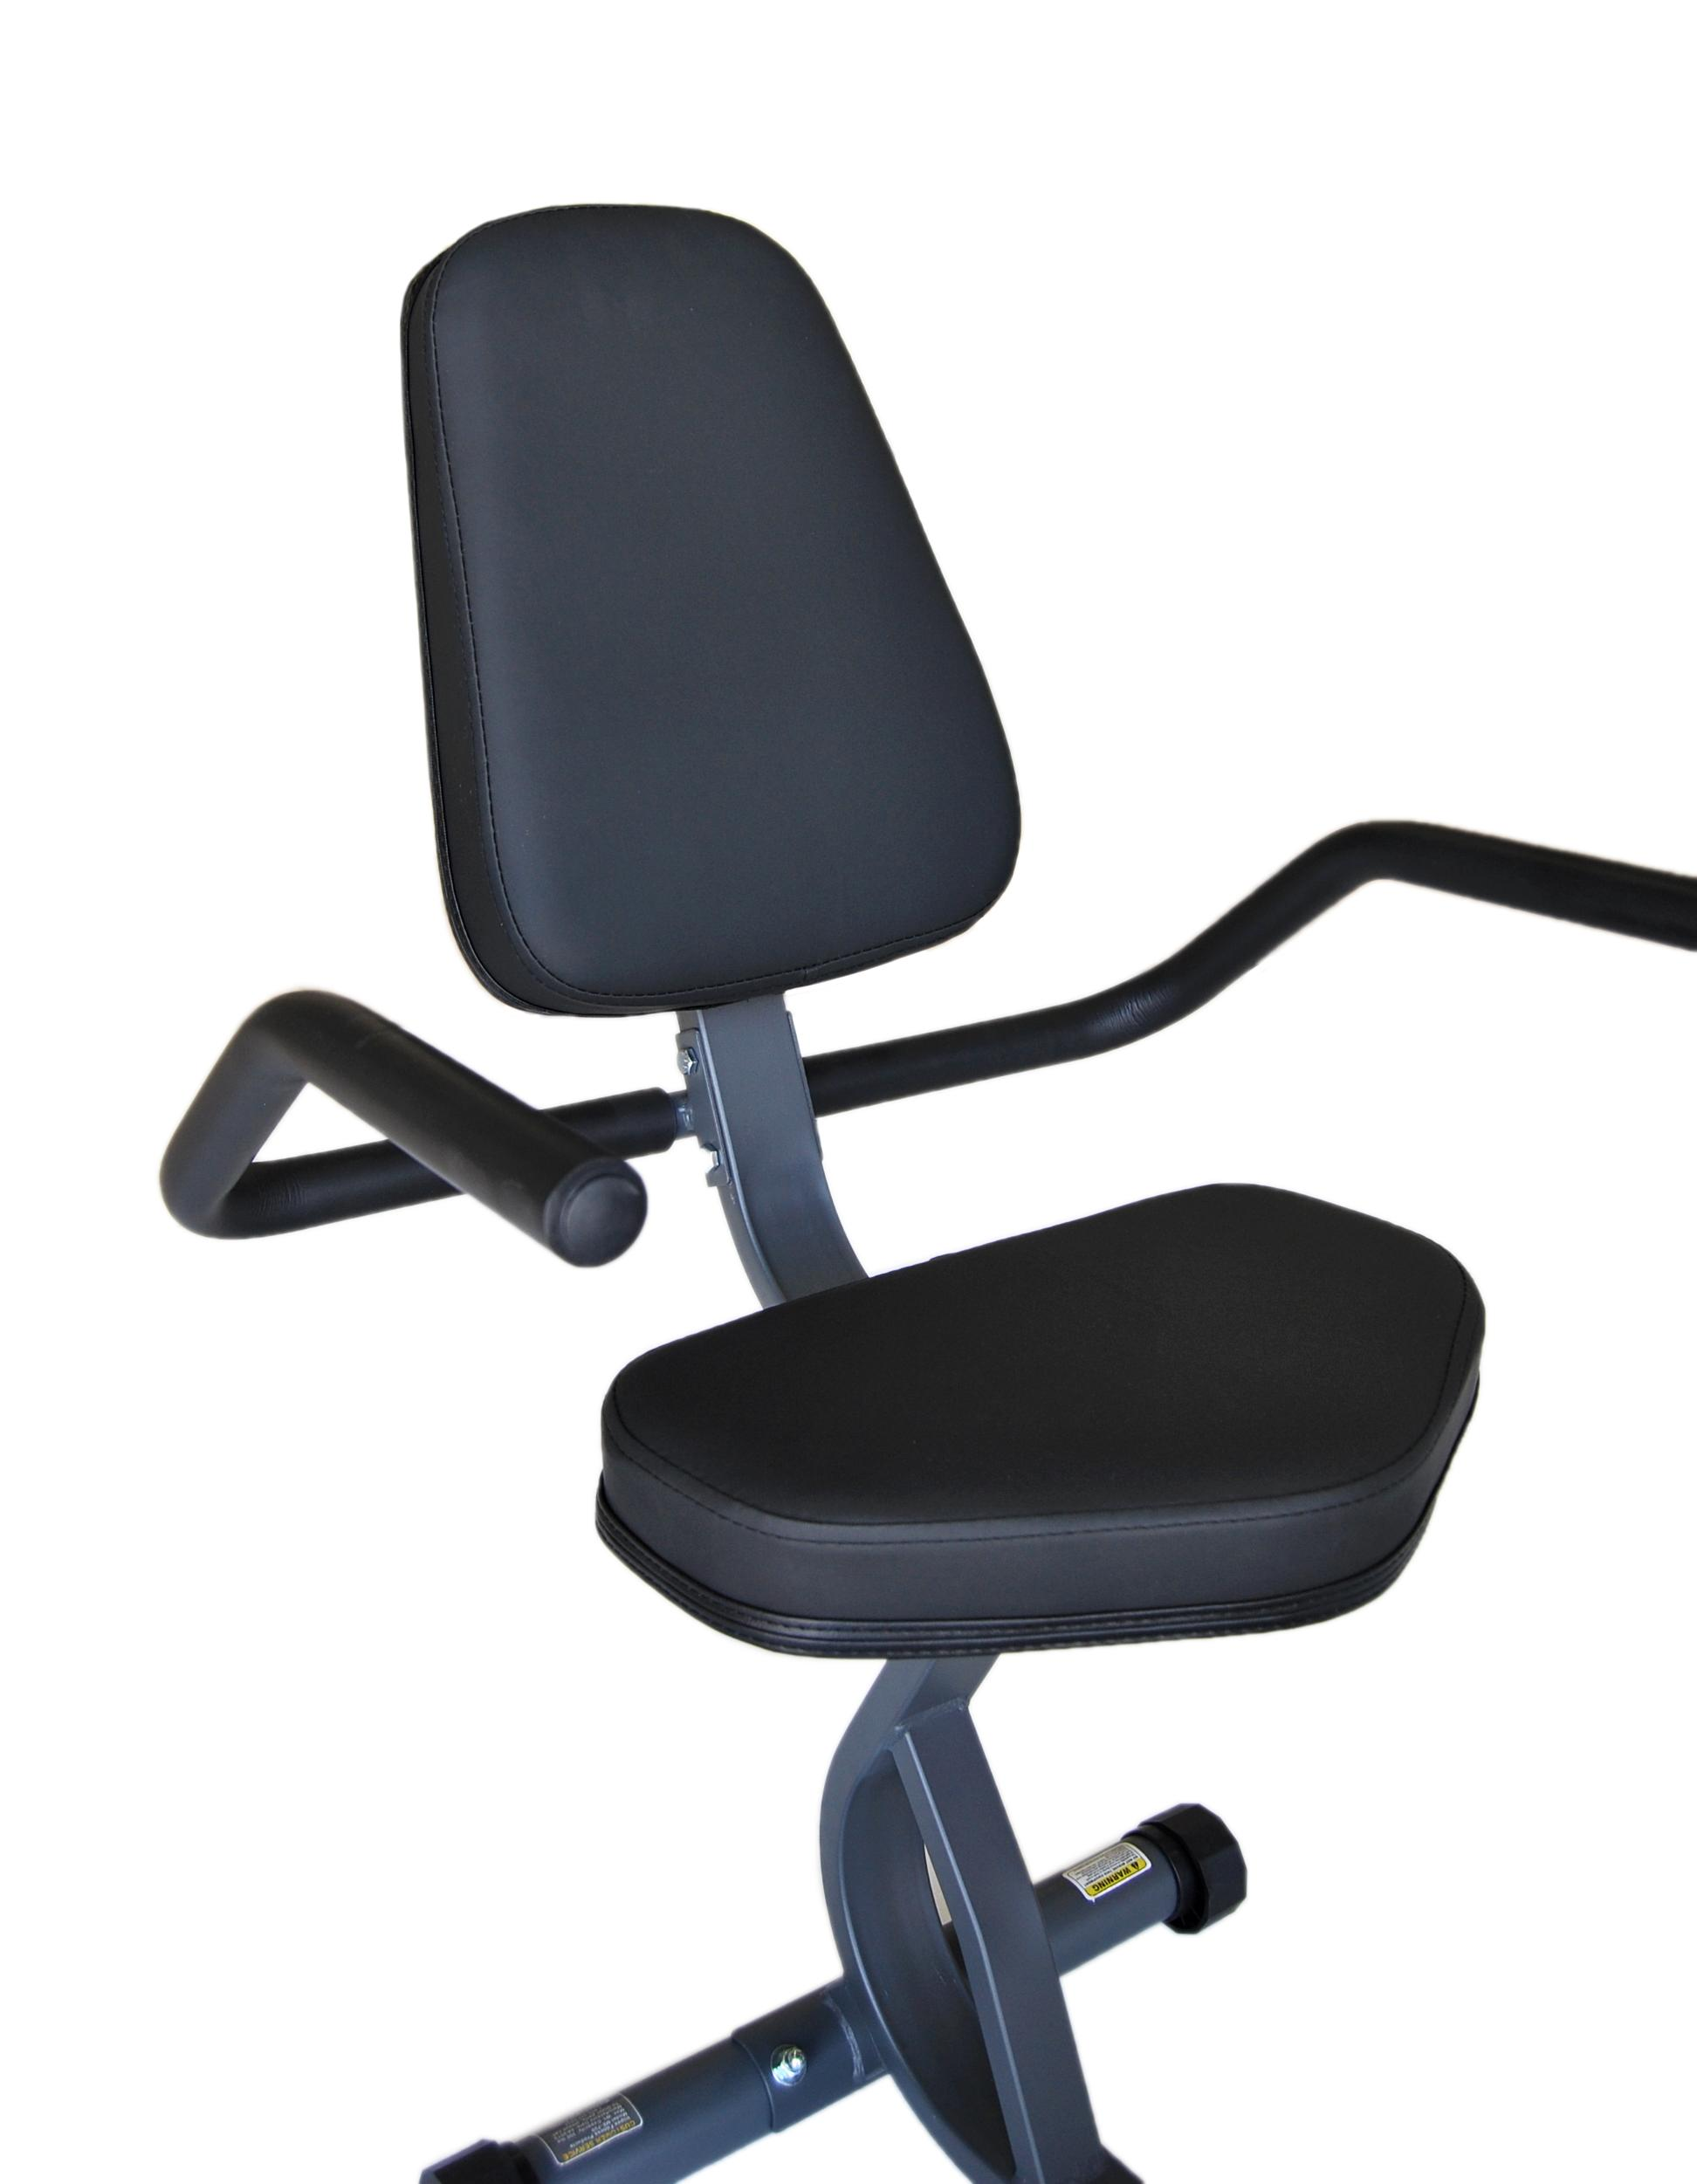 home pro black uk next gt bicycle office desk racing amazon omega white co chair dp leather kitchen